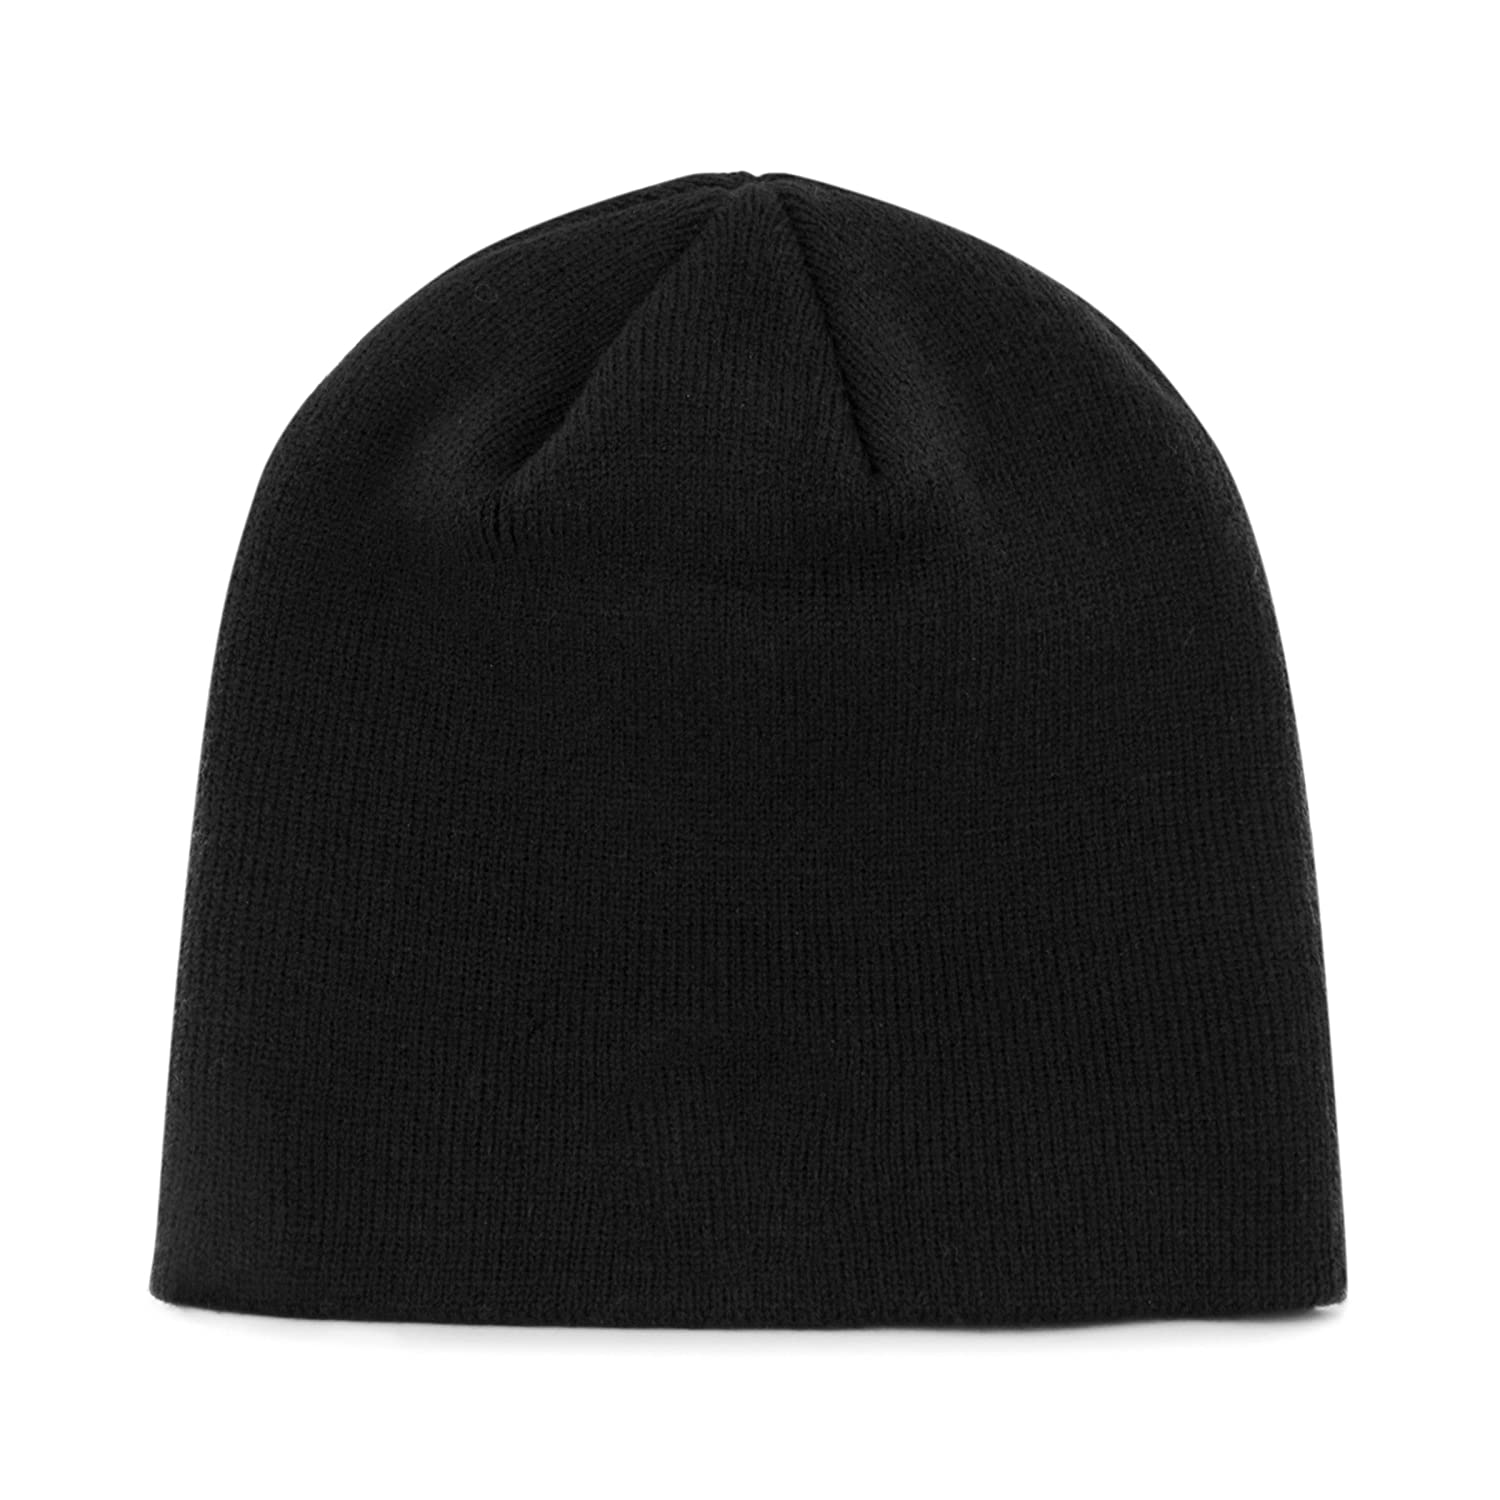 47 Brand Cuffless Winter Beanie Hat One Size Fits Most NFL Knit Skull Toque Cap